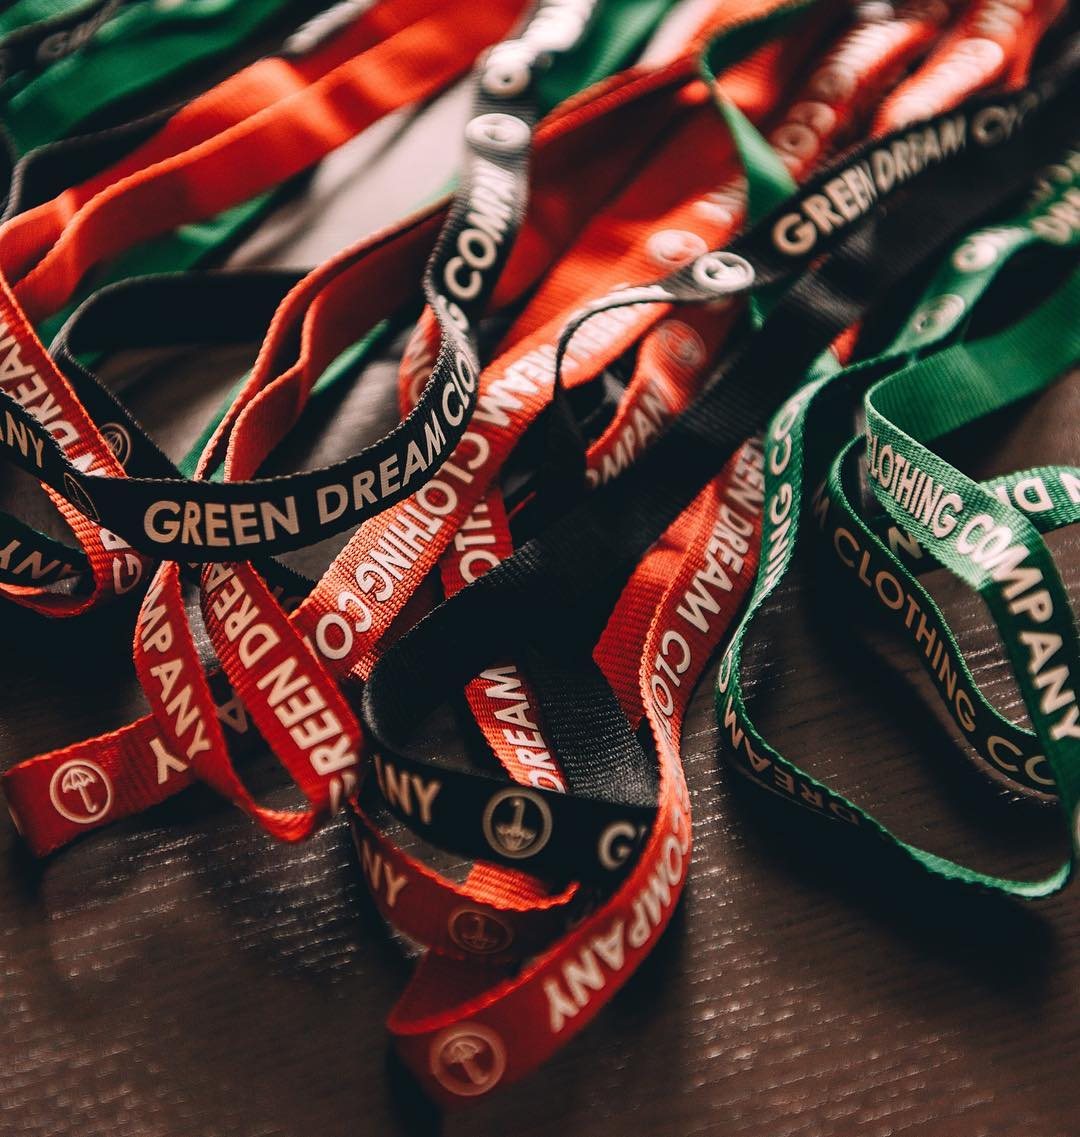 lanyards are now live @ greendreamcloco.com and will be available at the pop-up shop next month